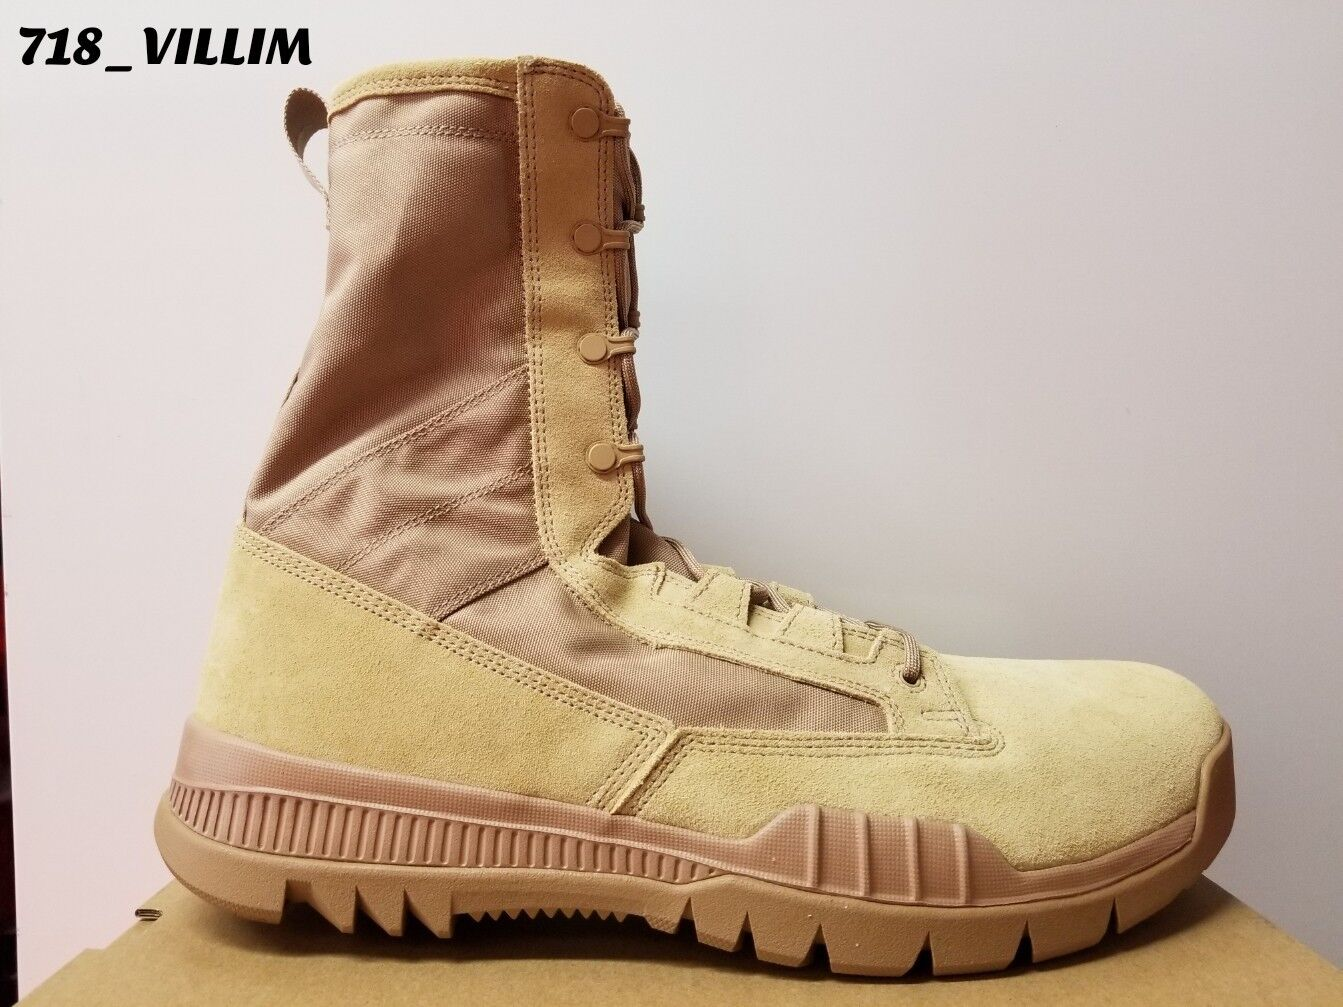 NIKE SFB SPECIAL FIELD 8 LEATHER BOOTS BRITISH KHAKI 688974 200 MILITARY SIZE 15